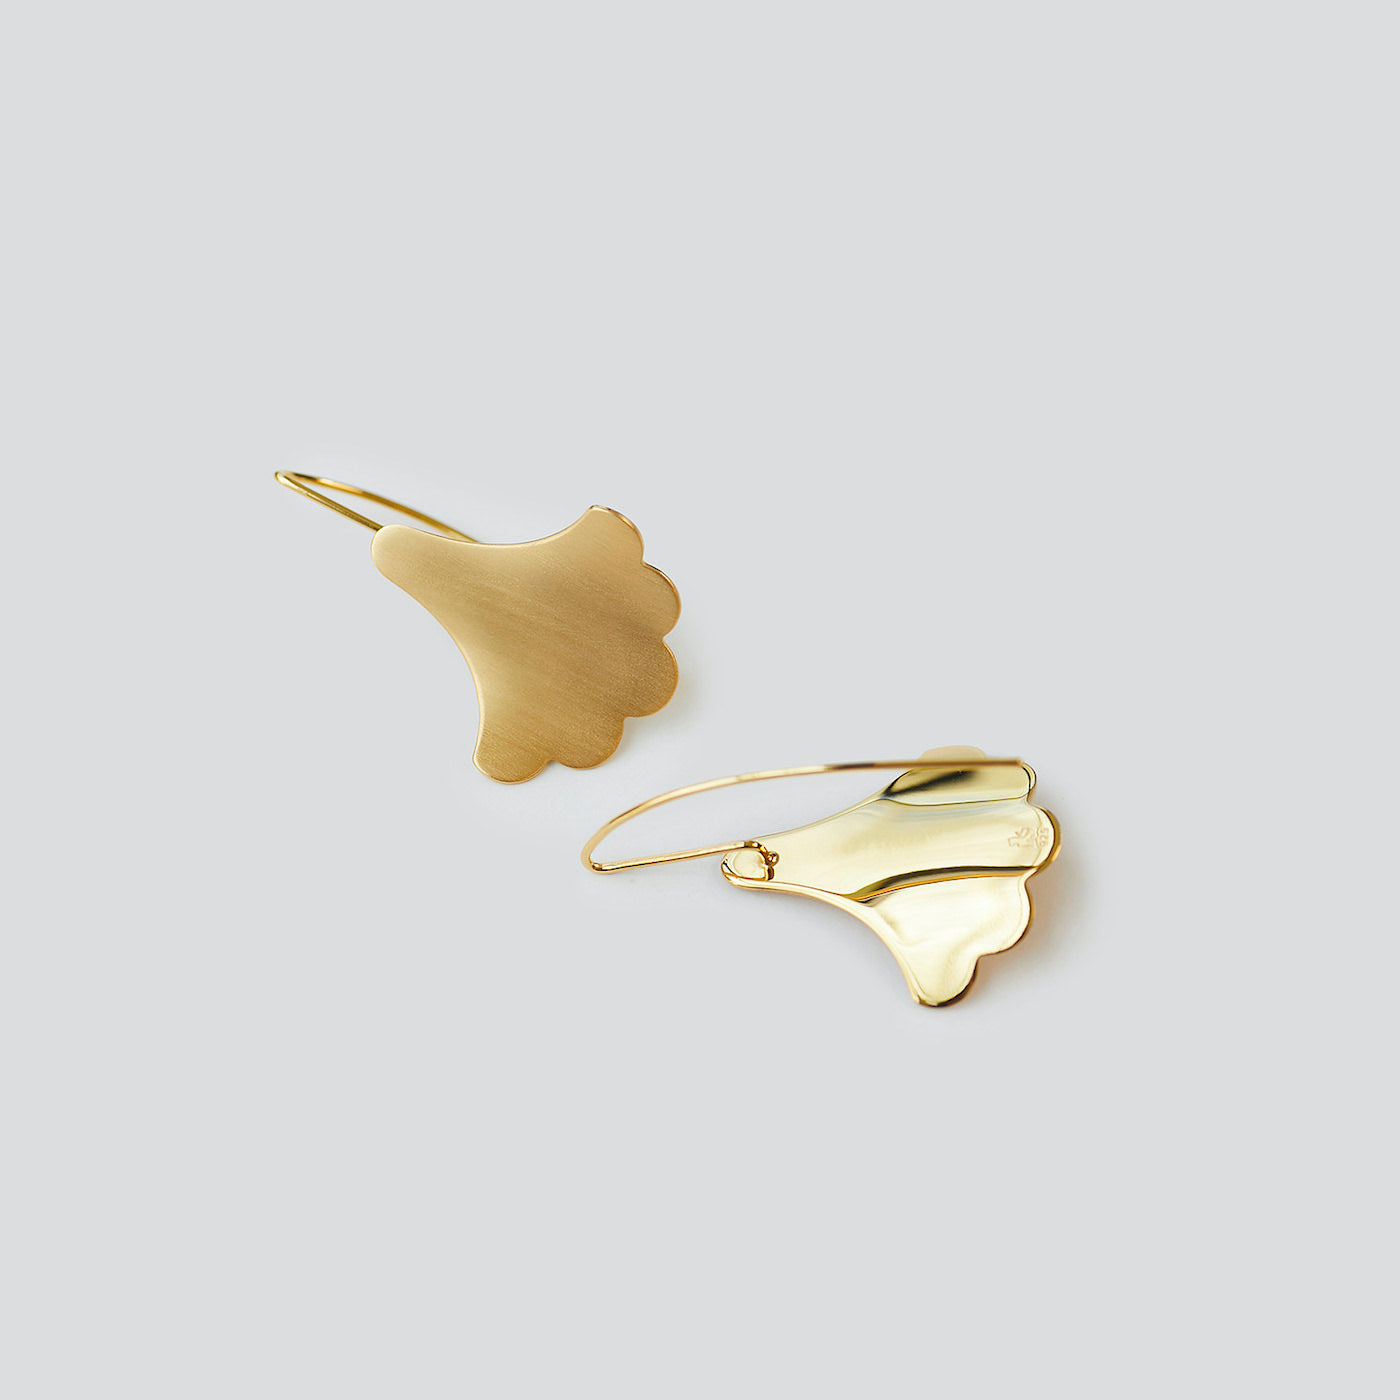 Plume Hook Earrings in 18K gold vermeil on white background